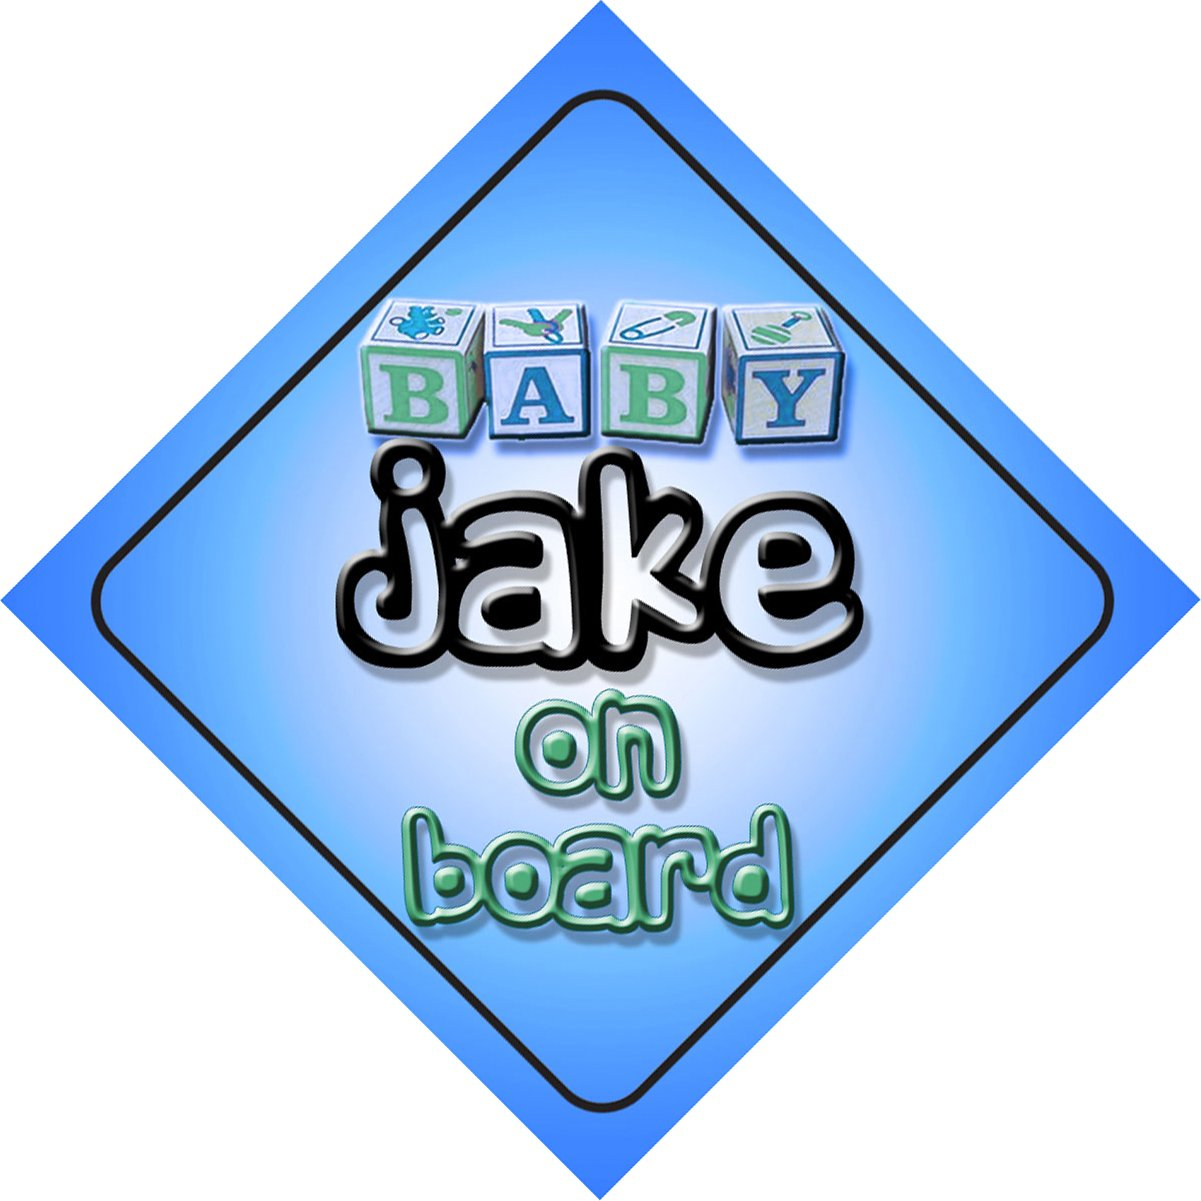 Baby Boy Jake on board novelty car sign gift/present for new child/newborn baby by mybabyonboard UK   B008D1ENKQ